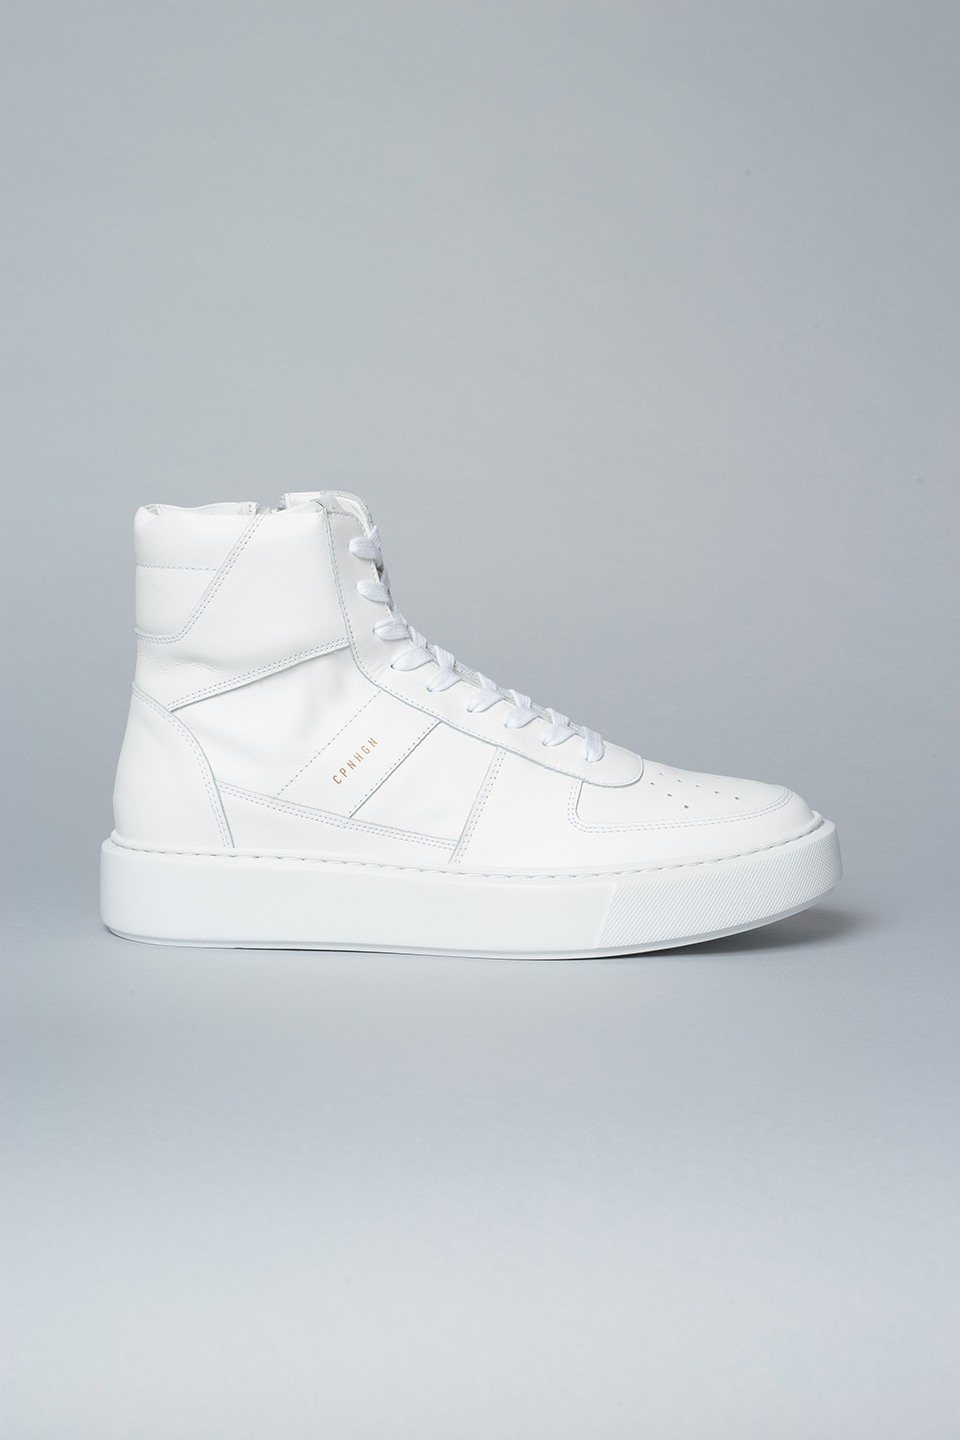 CPH153M vitello white - alternative 1